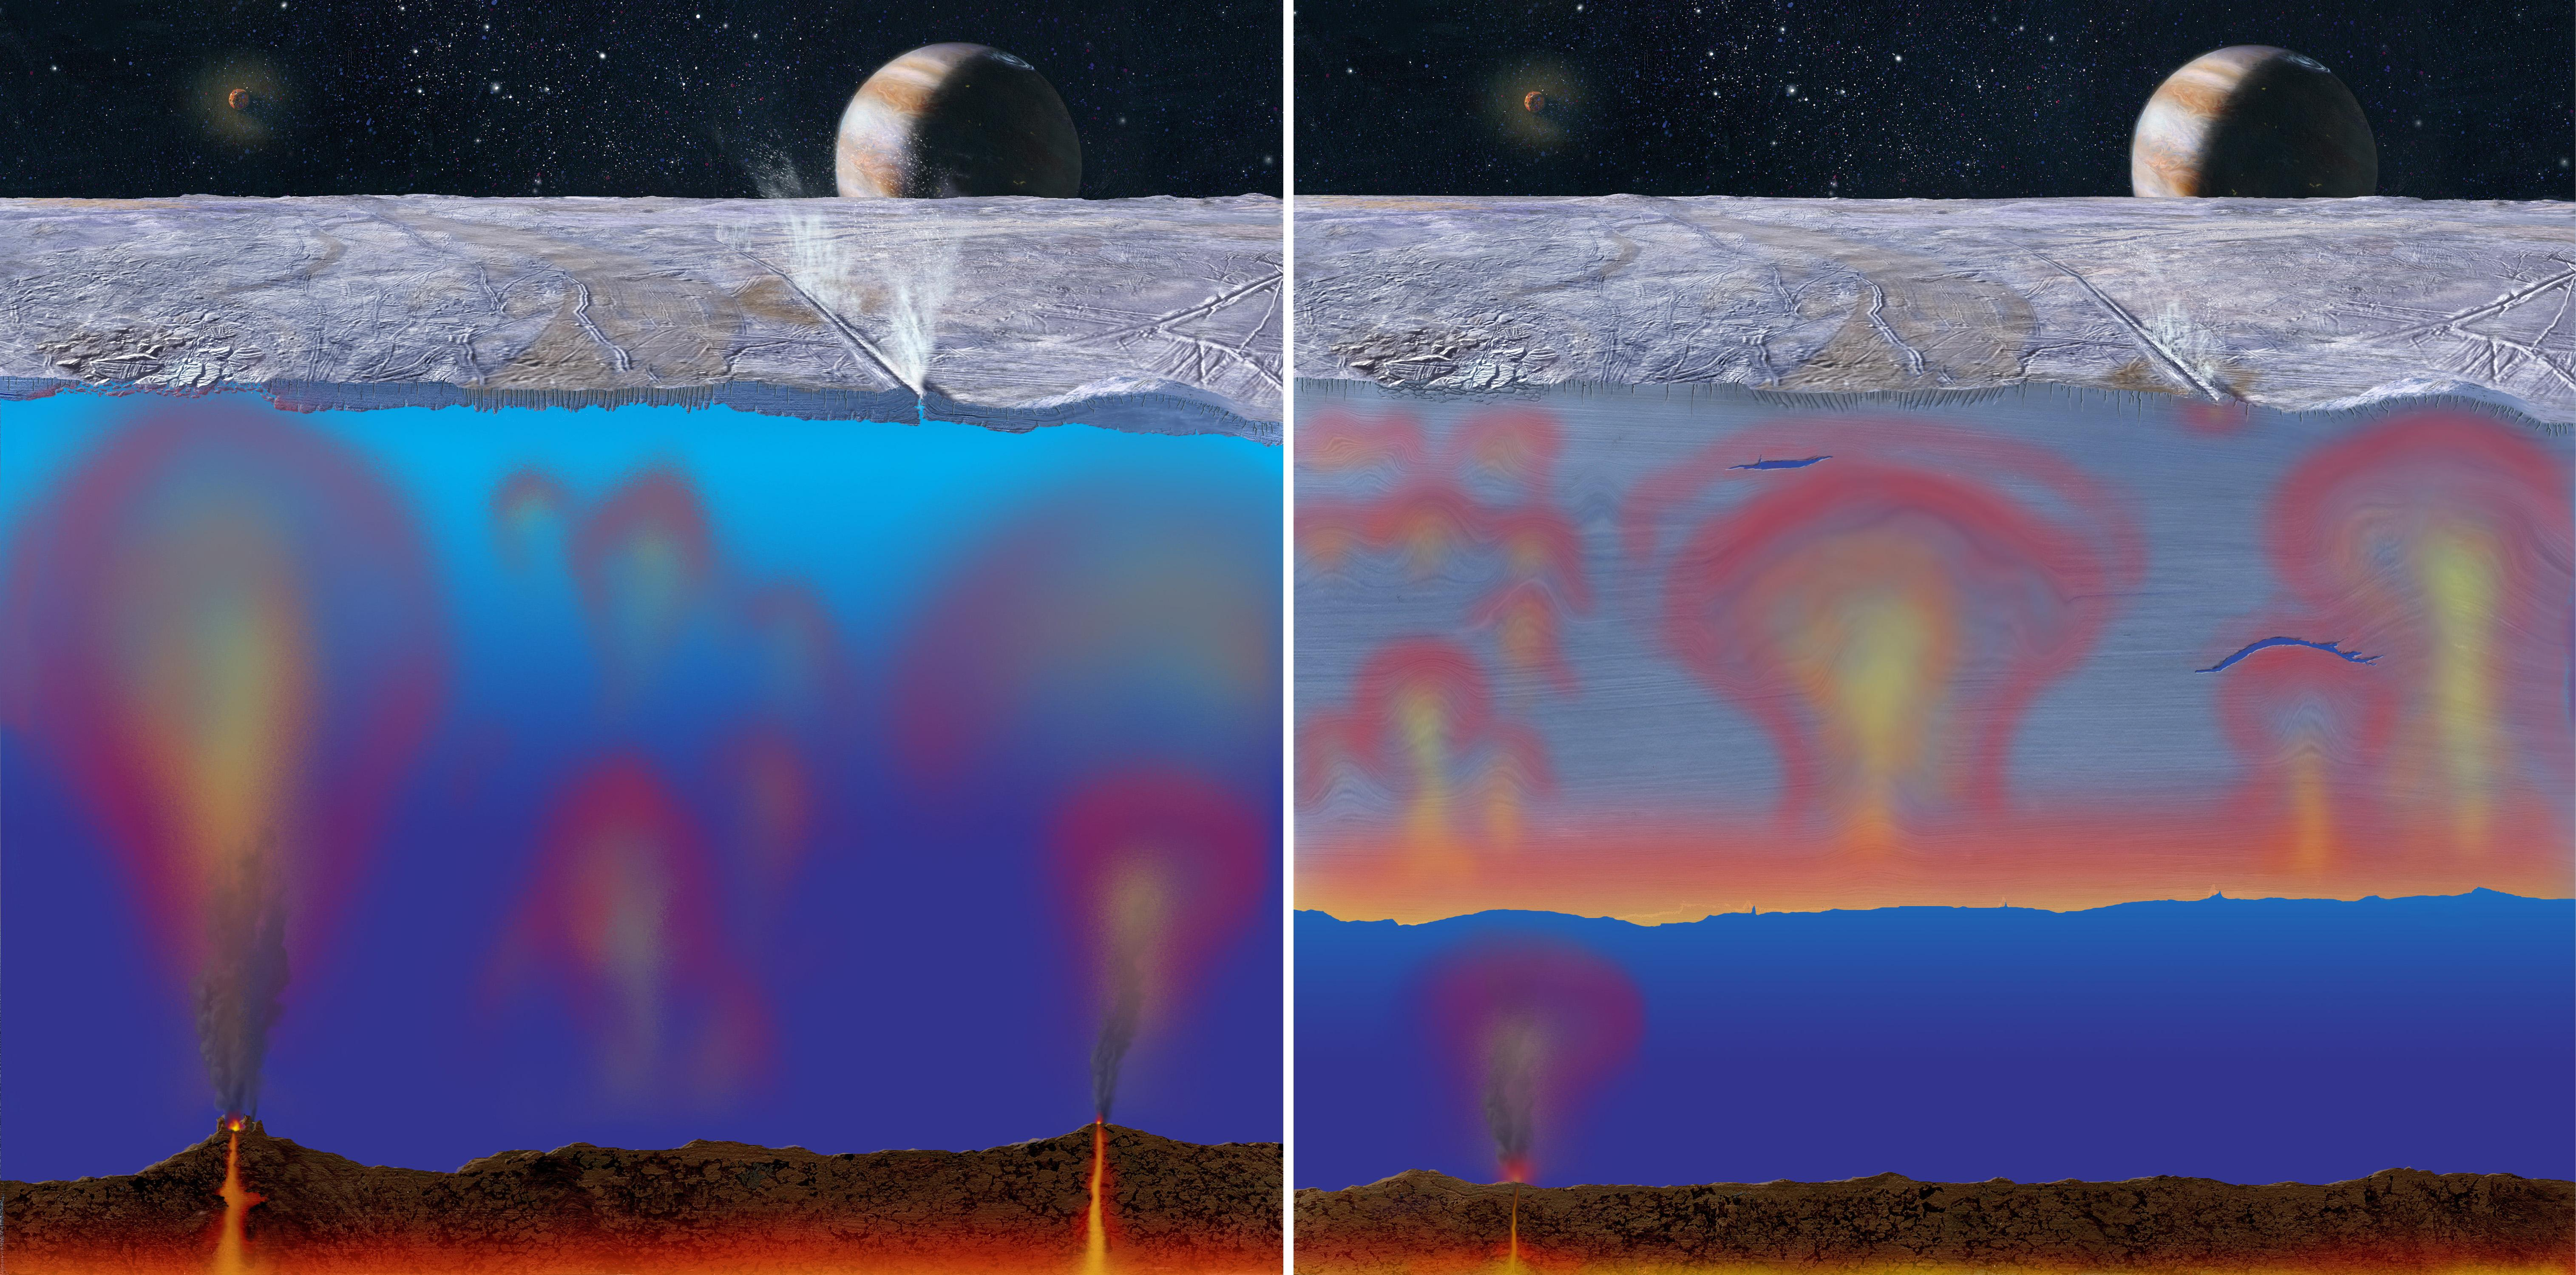 thick or thin ice shell on europa artist concept nasa image and